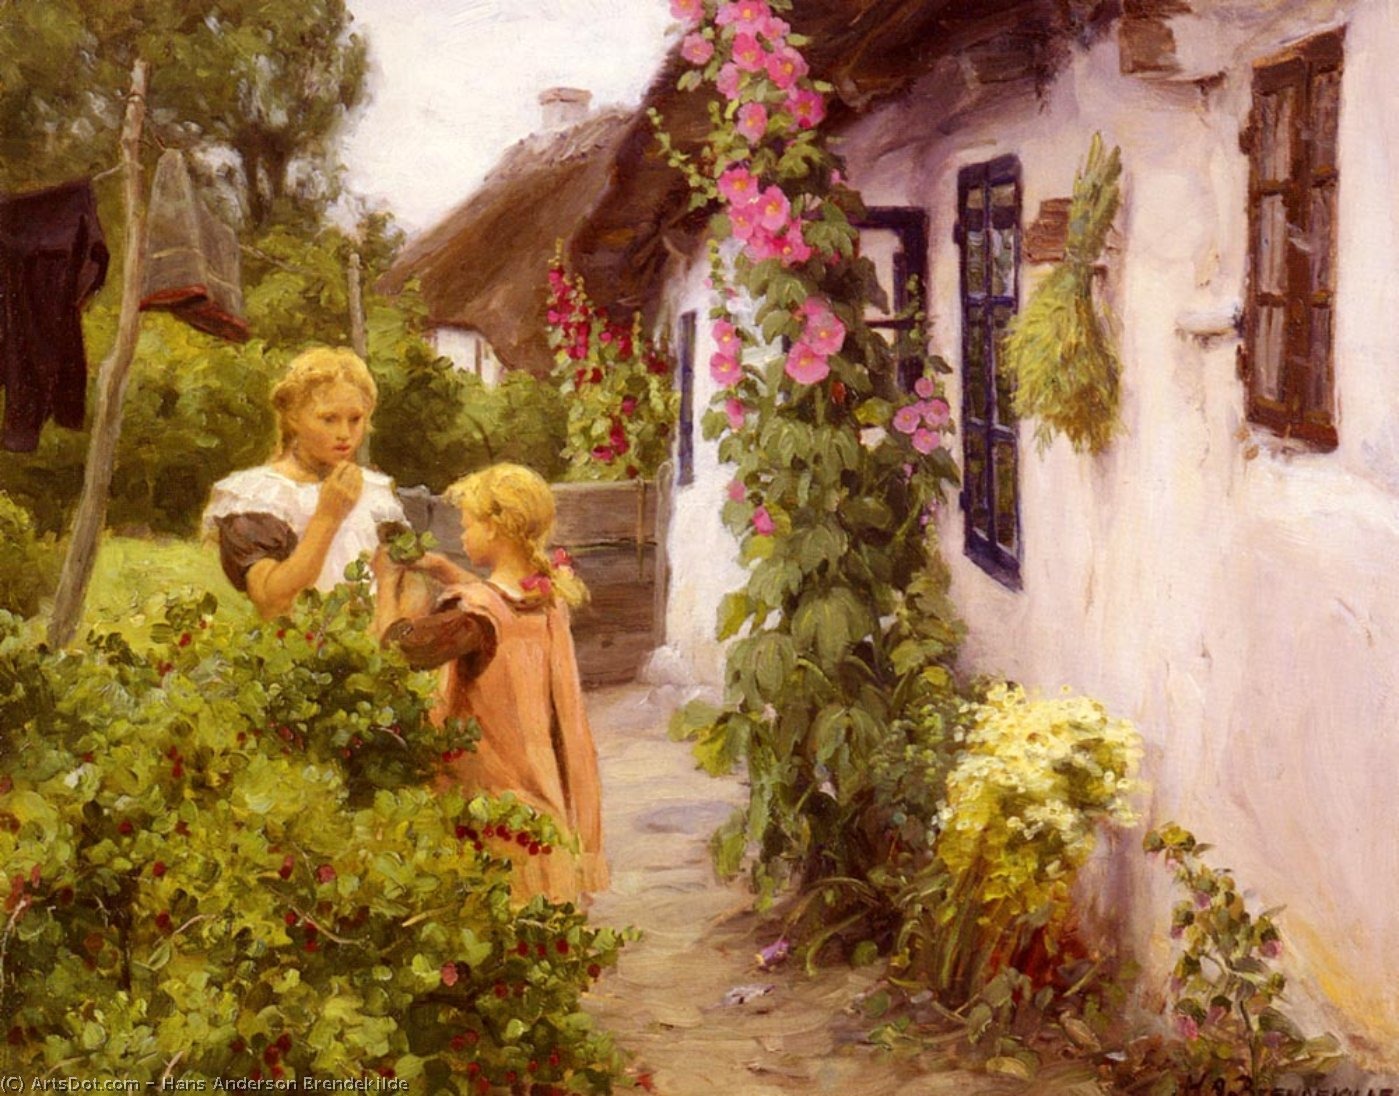 The cottage garden by Hans Andersen Brendekilde | ArtsDot.com